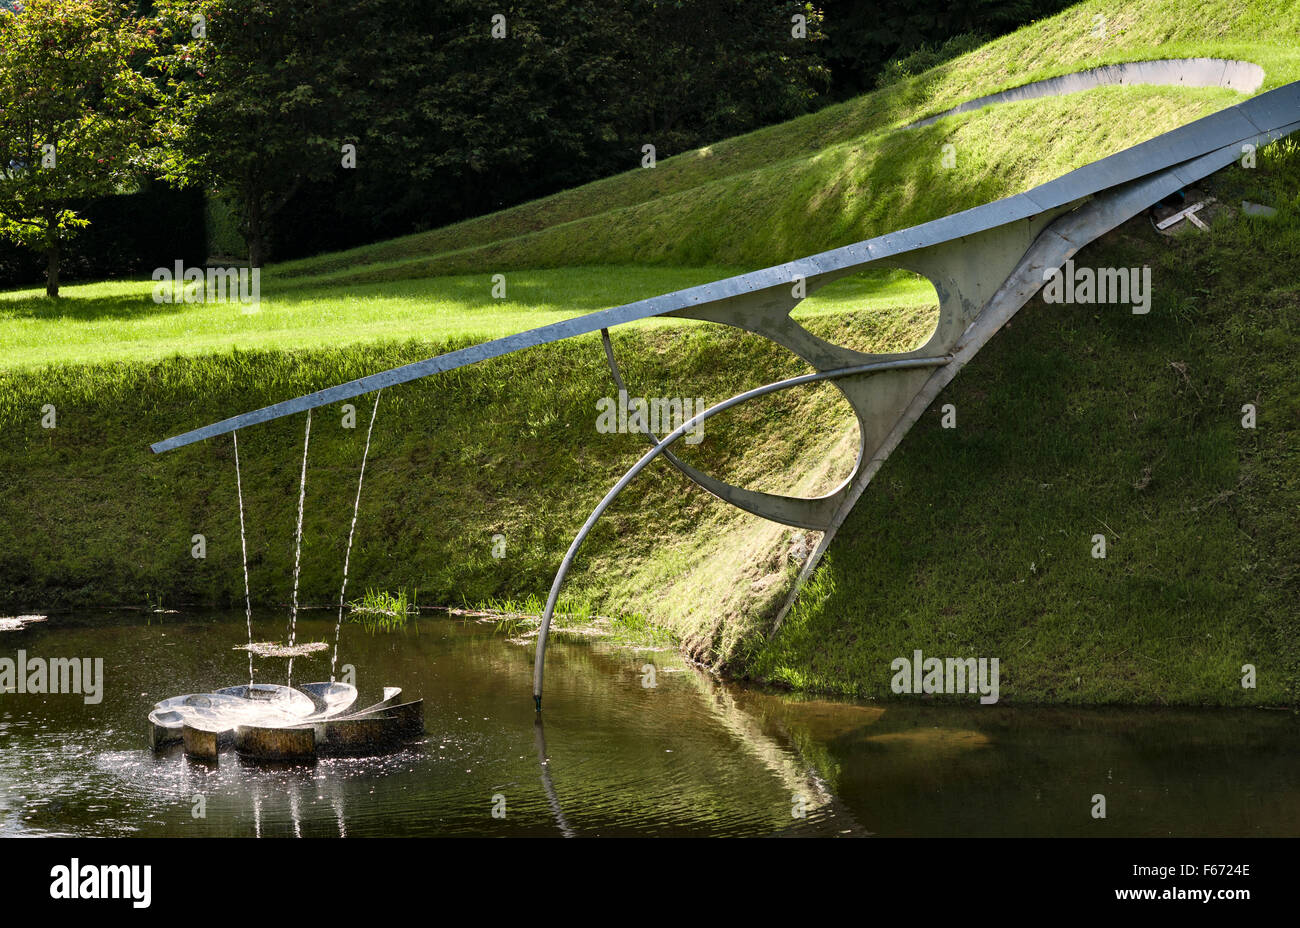 the garden of cosmic speculation dumfries scotland by charles stock photo royalty free image. Black Bedroom Furniture Sets. Home Design Ideas